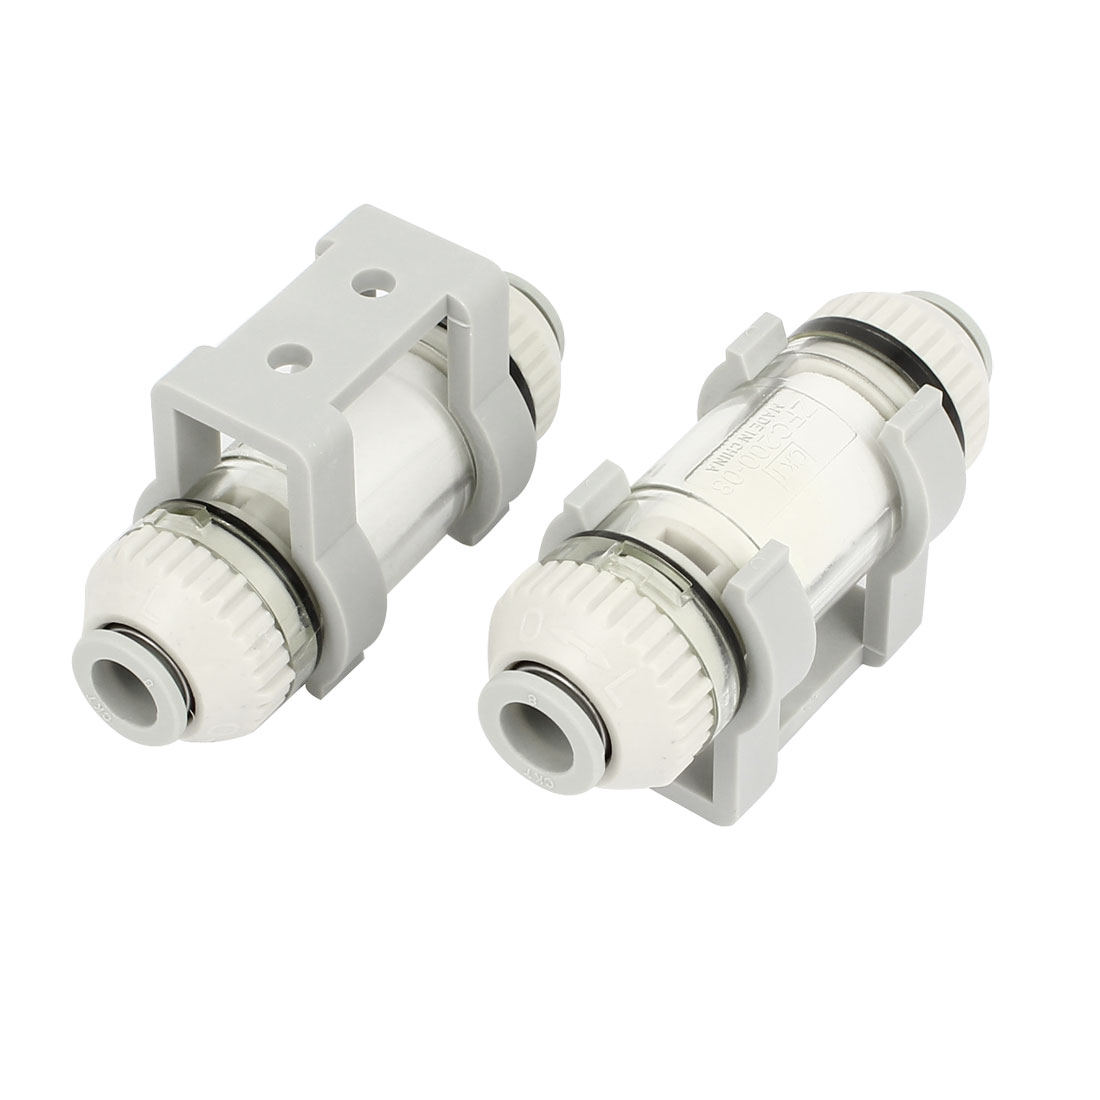 ZFC100-04B 4mm OD Tube Quick Connector In Line Vacuum Air Suction Filter 2pcs